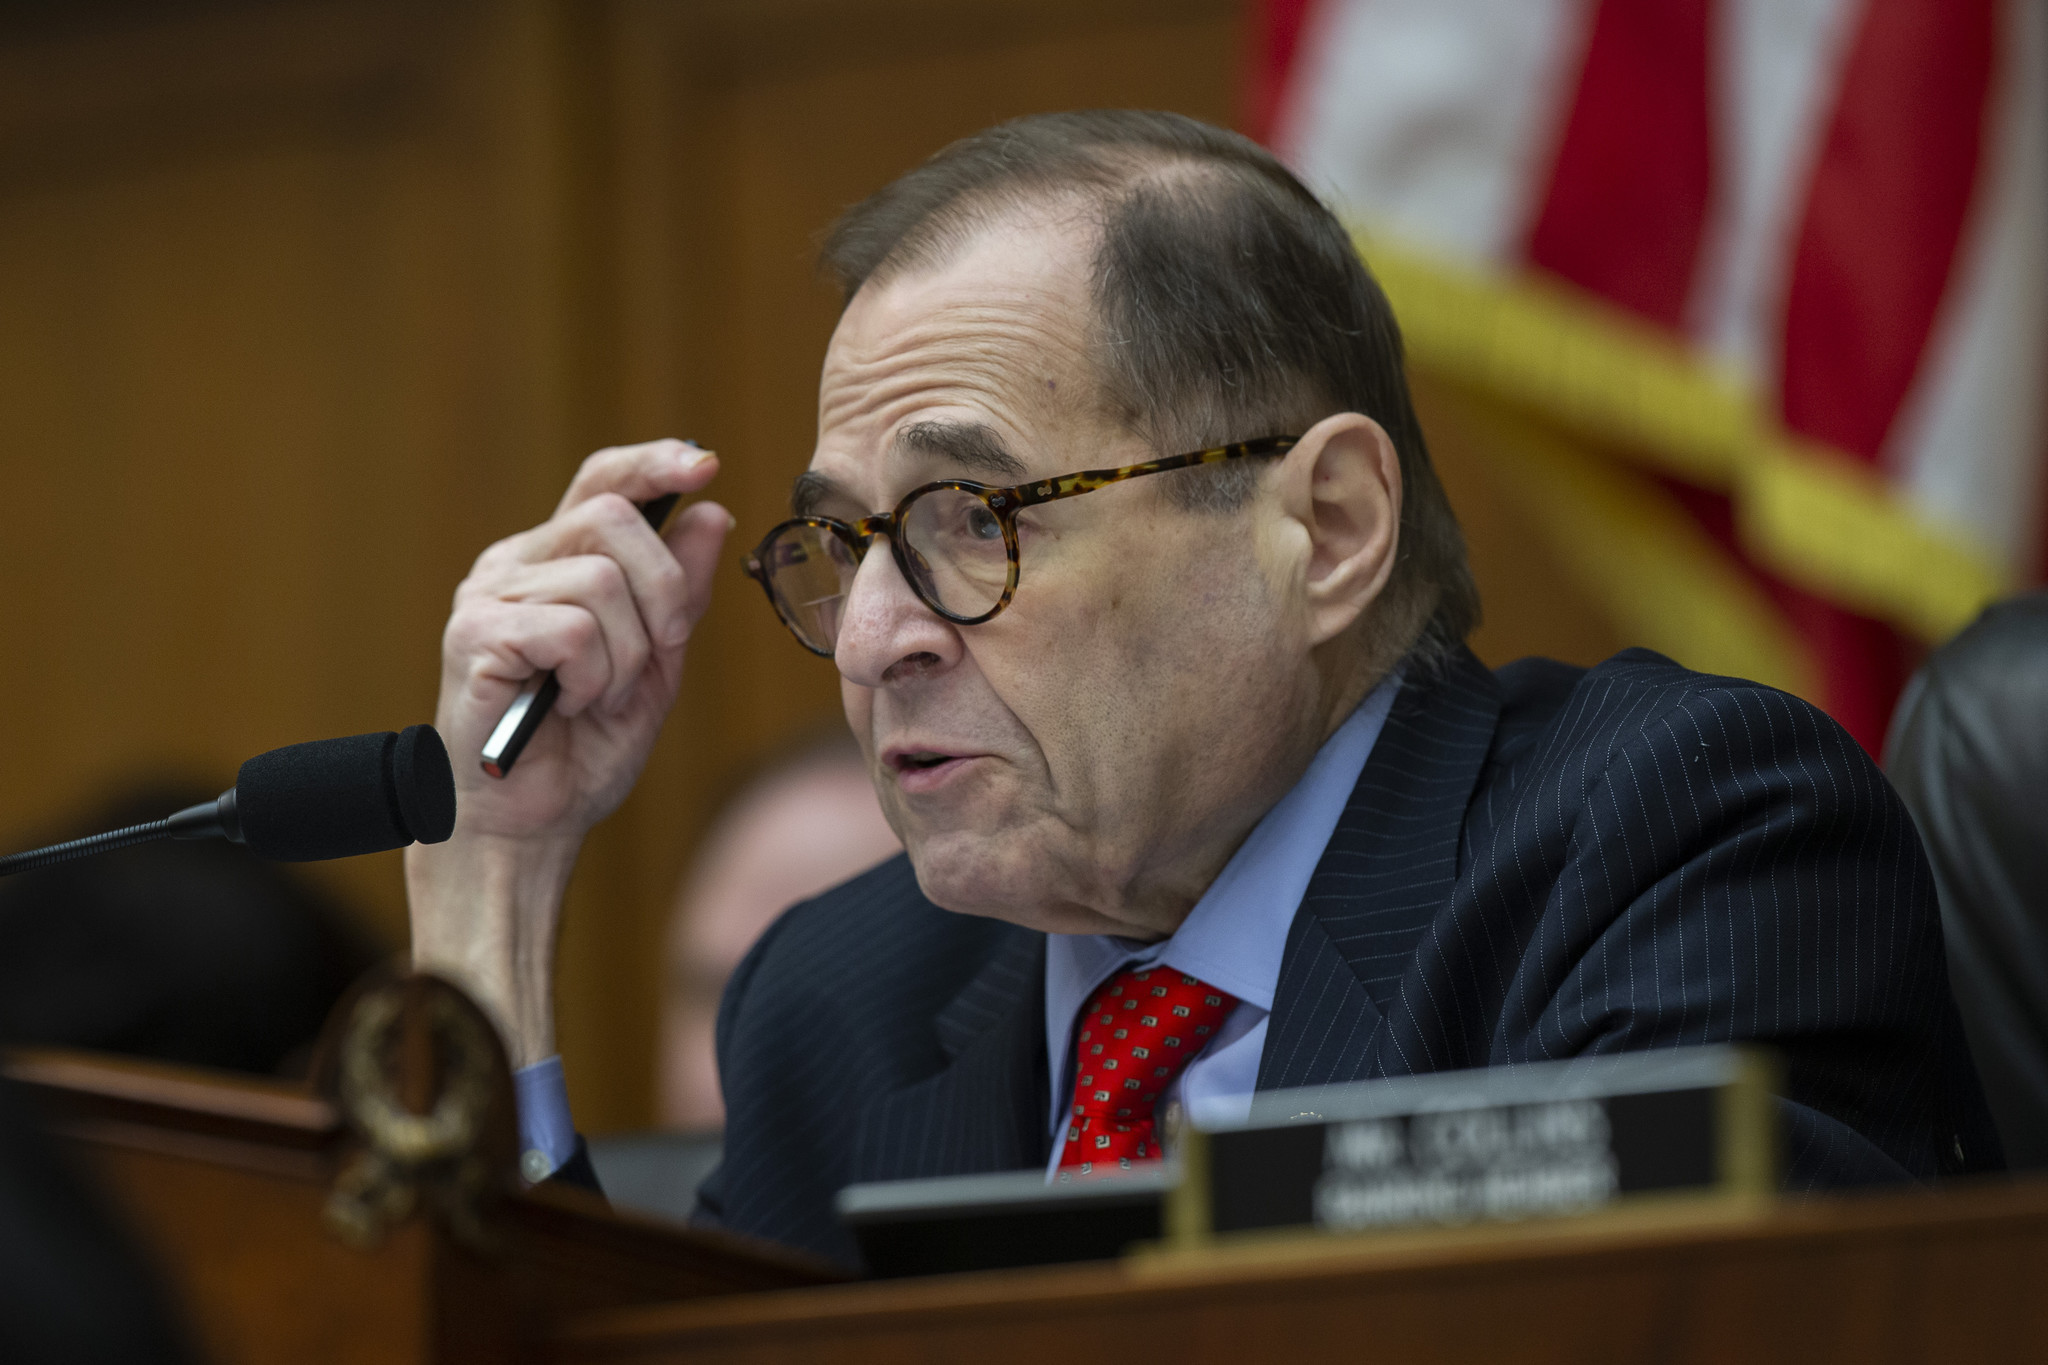 'Business as usual' for federal prosecutors despite coronavirus, Nadler writes, calling for release of inmates